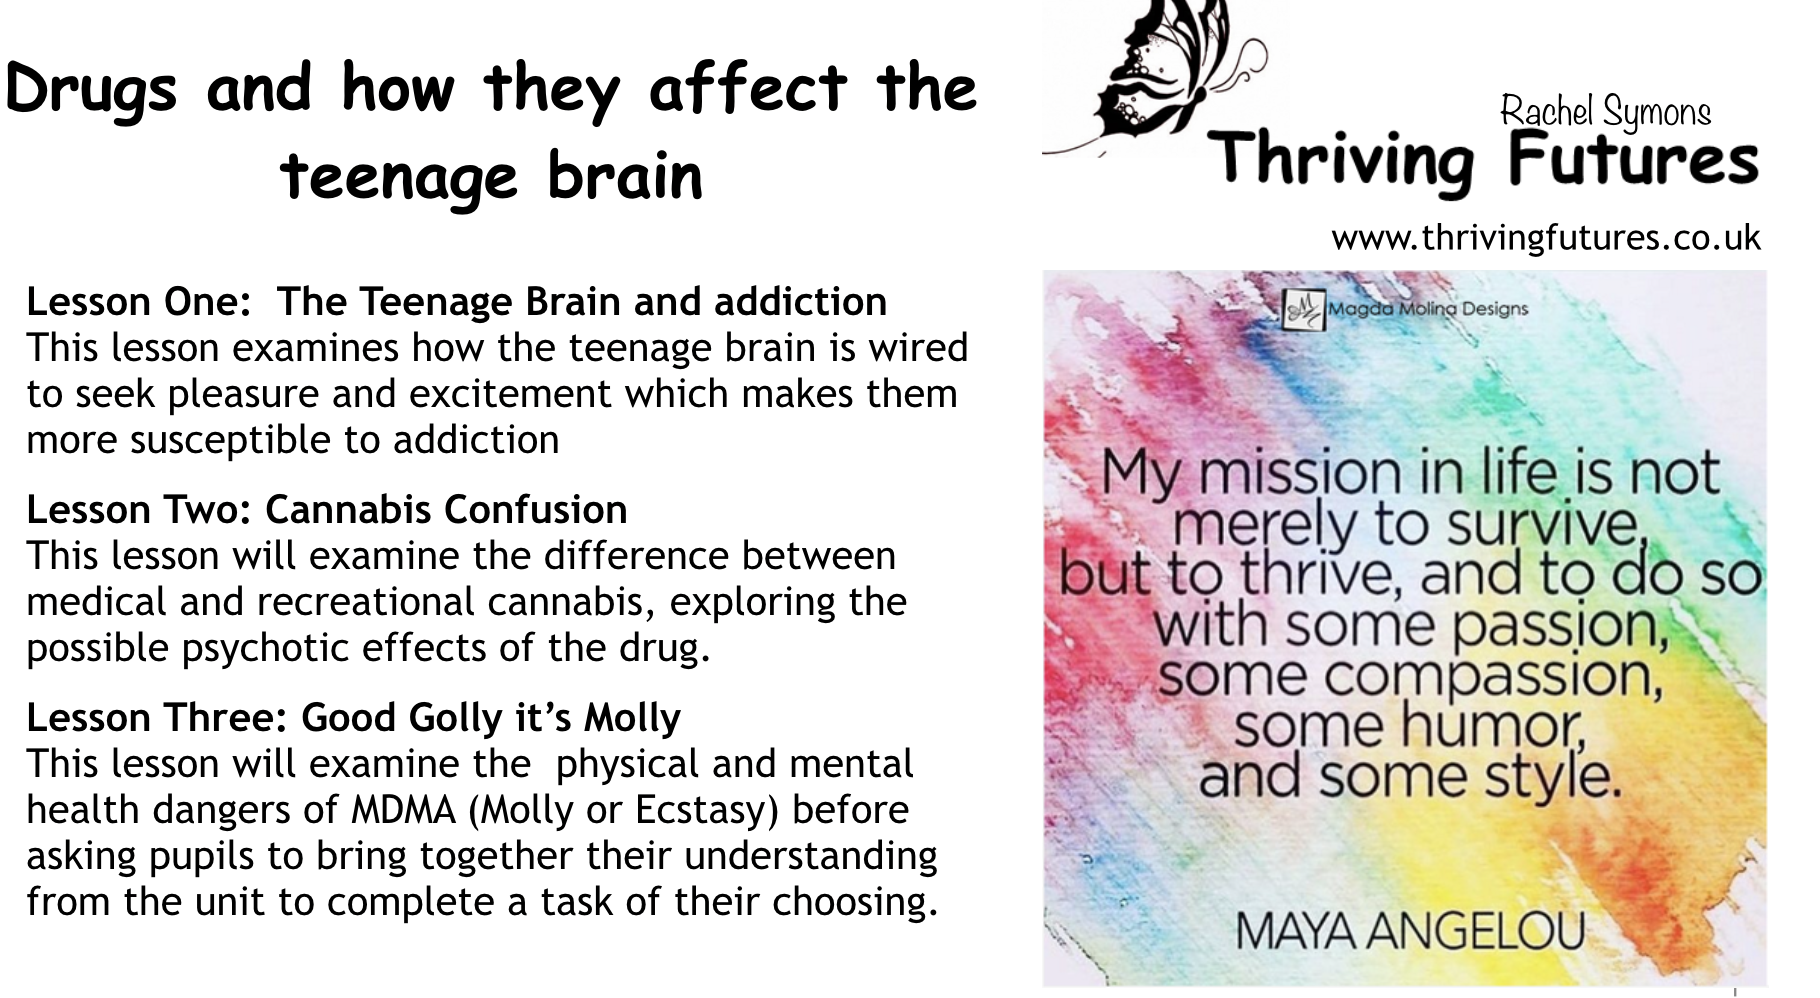 The Effect Of Drugs On The Teenage Brain